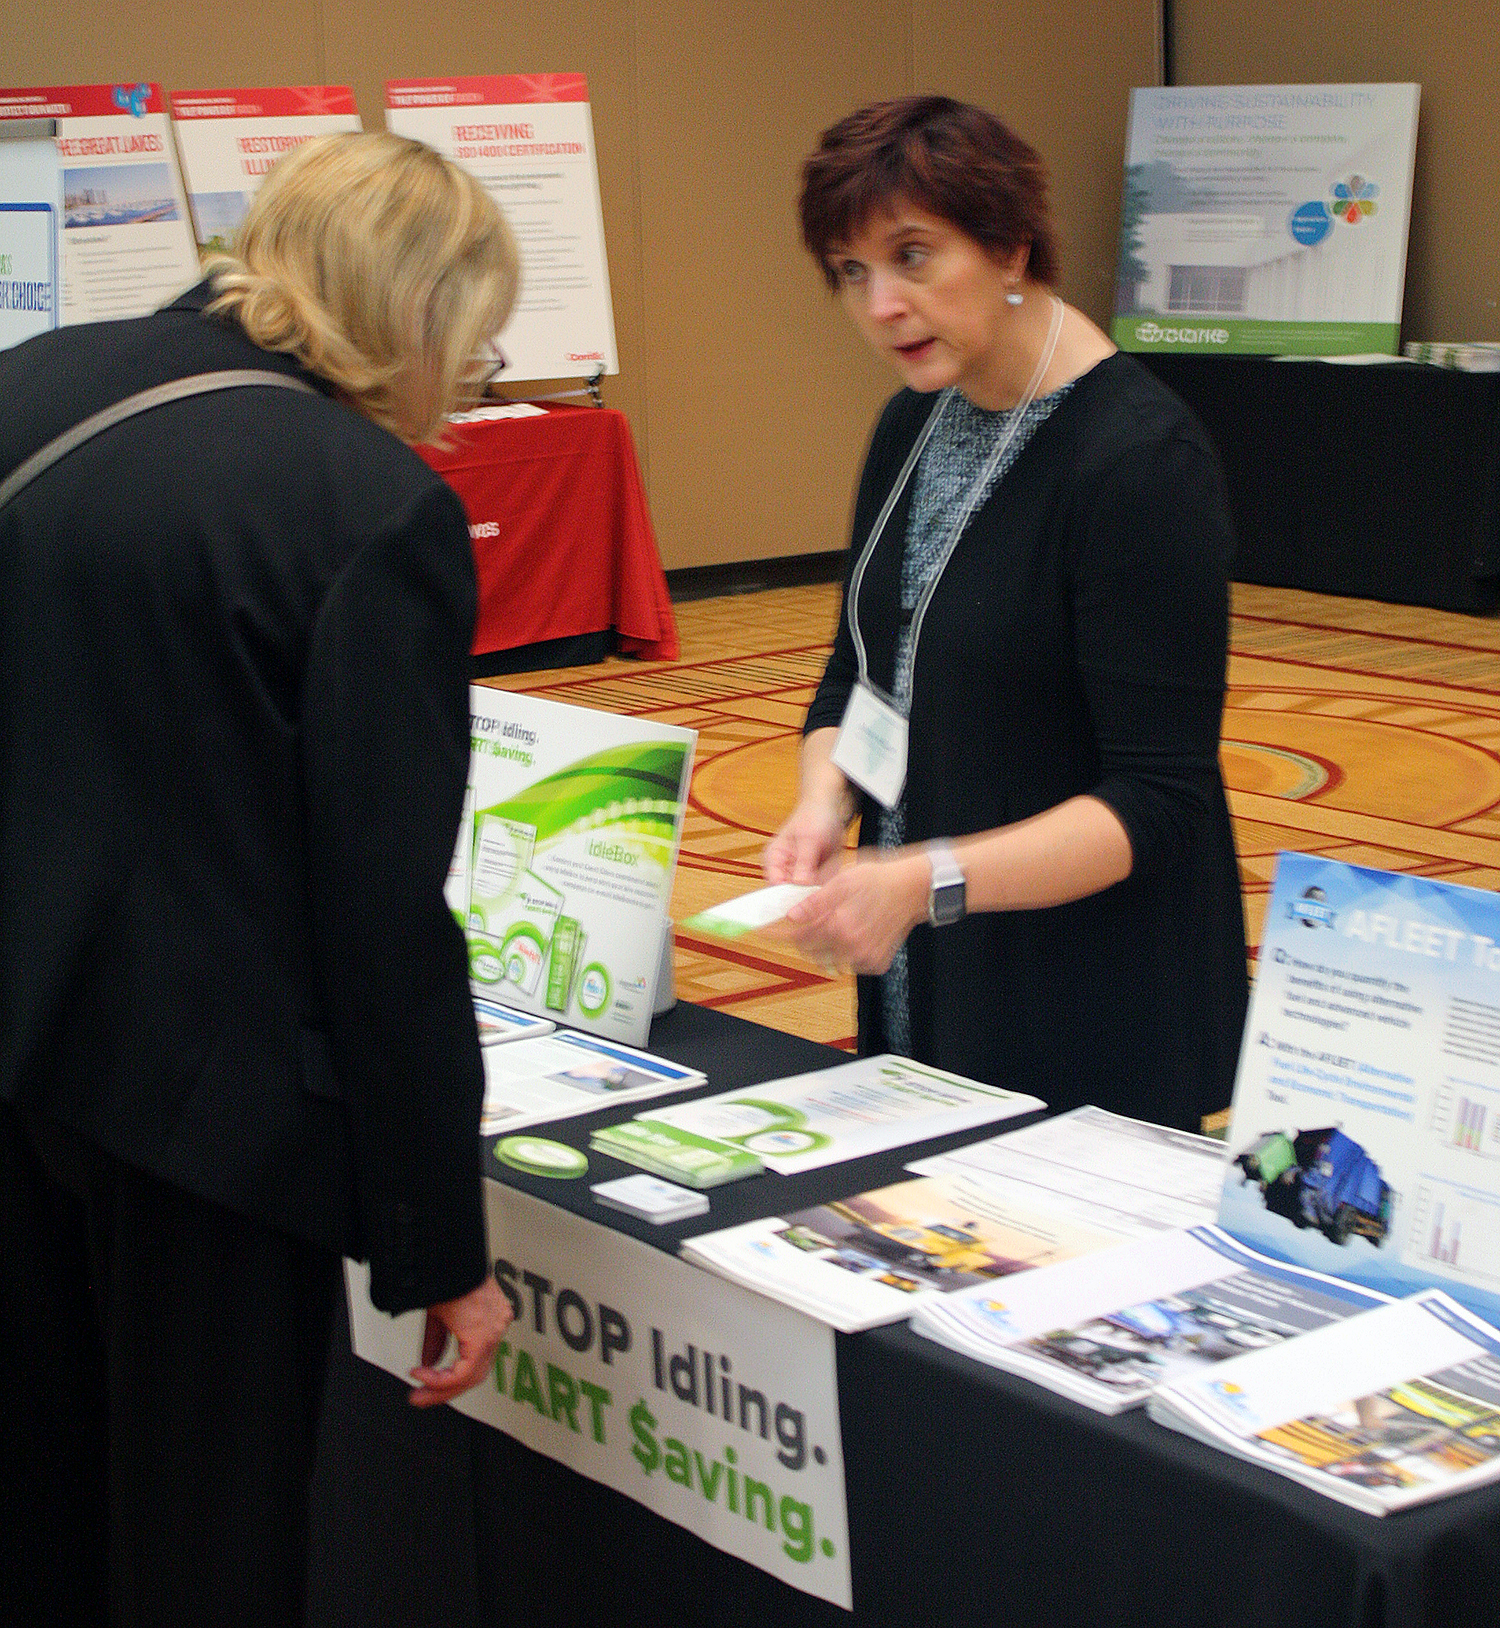 attendee speaking with a representative at a display table